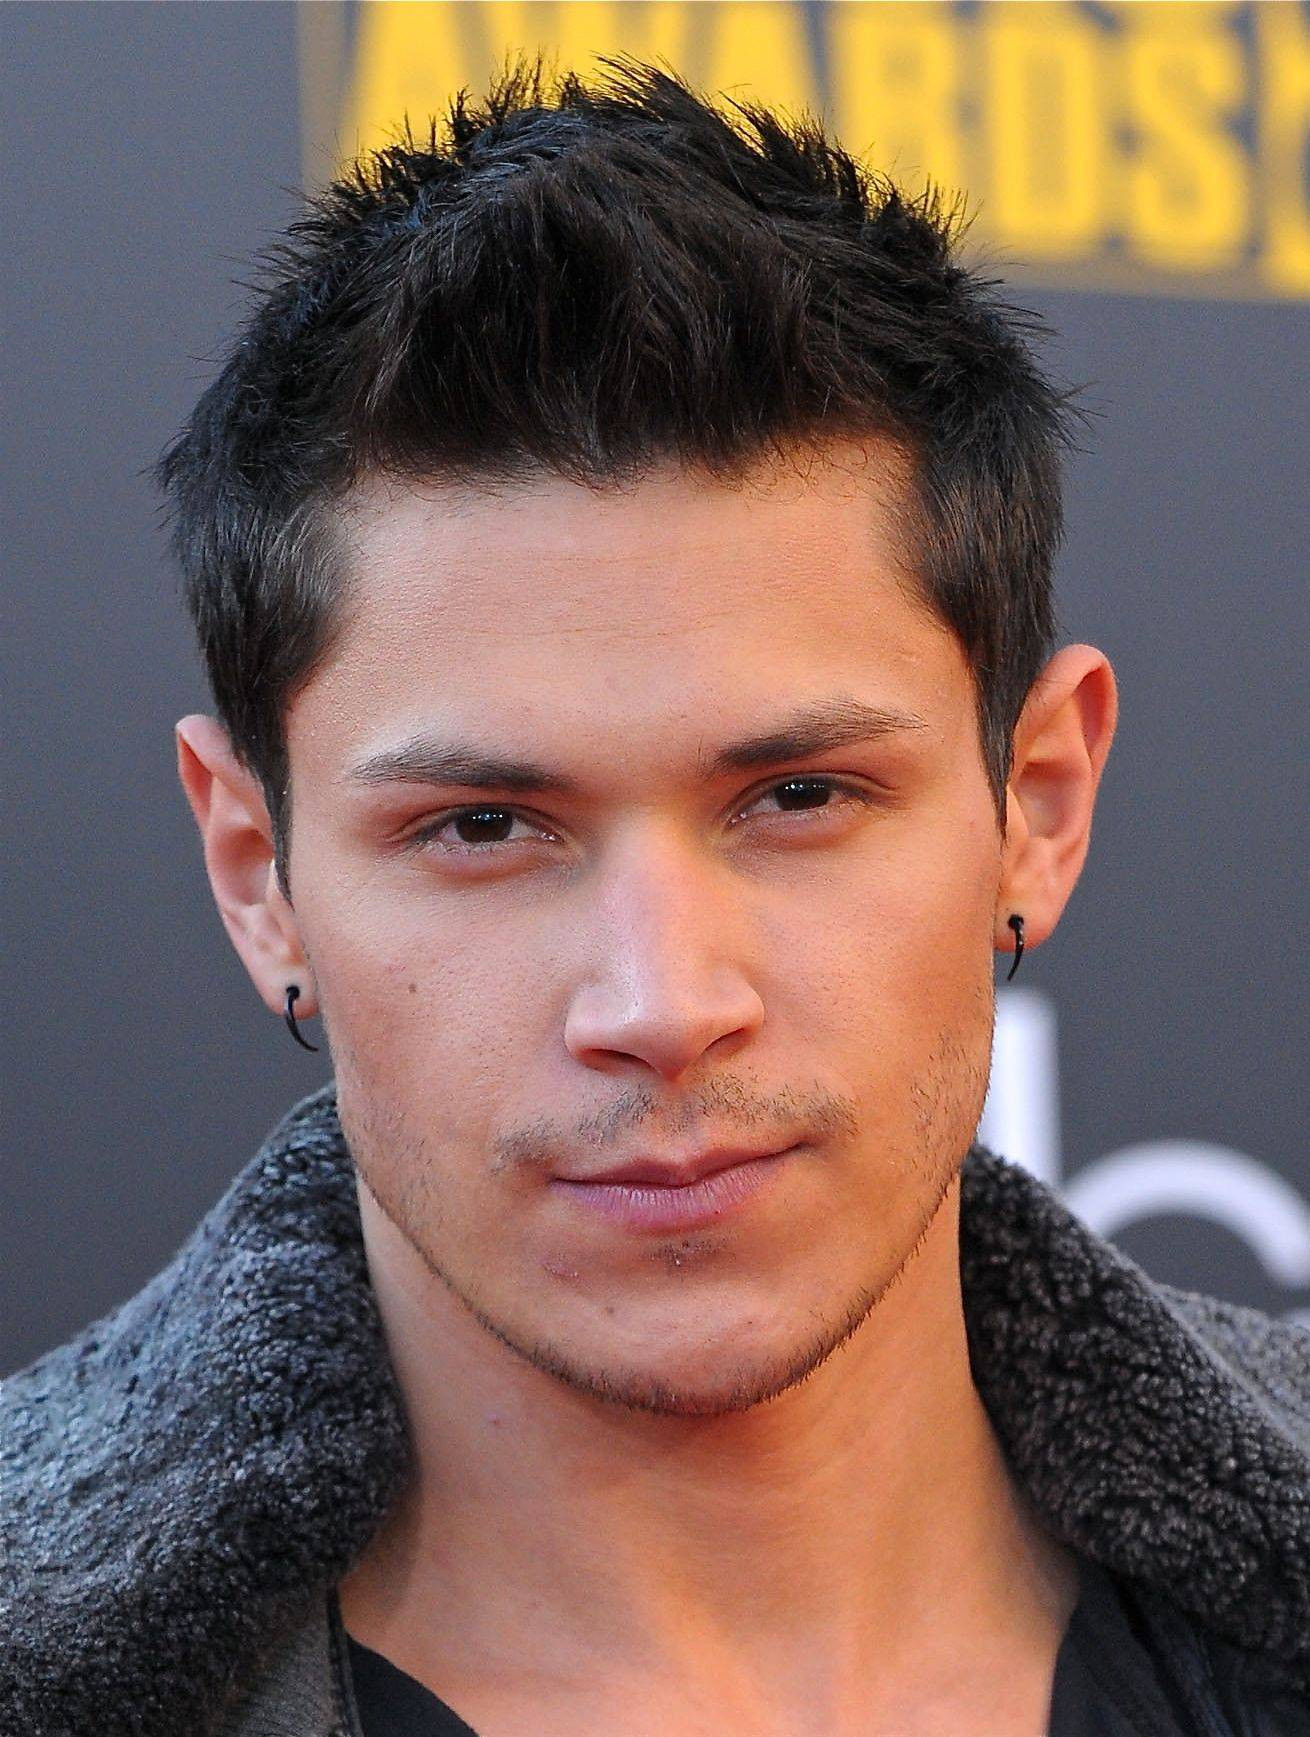 Hairstyles Male  Men s hairstyles 2013 the best LosHairos